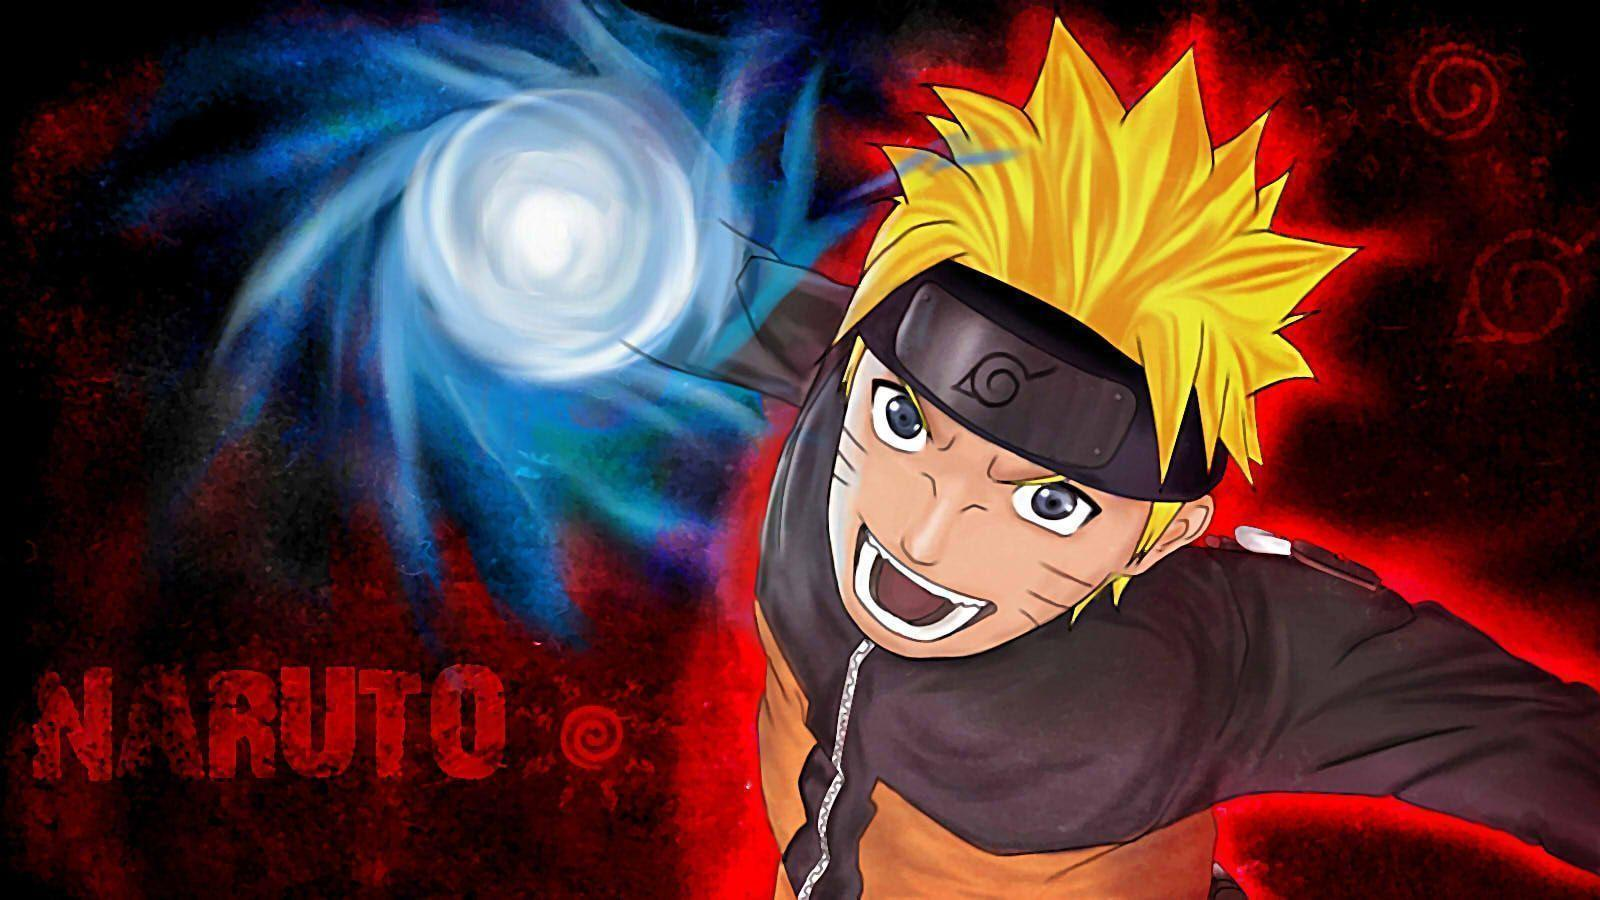 When did Naruto using rasengan pictures